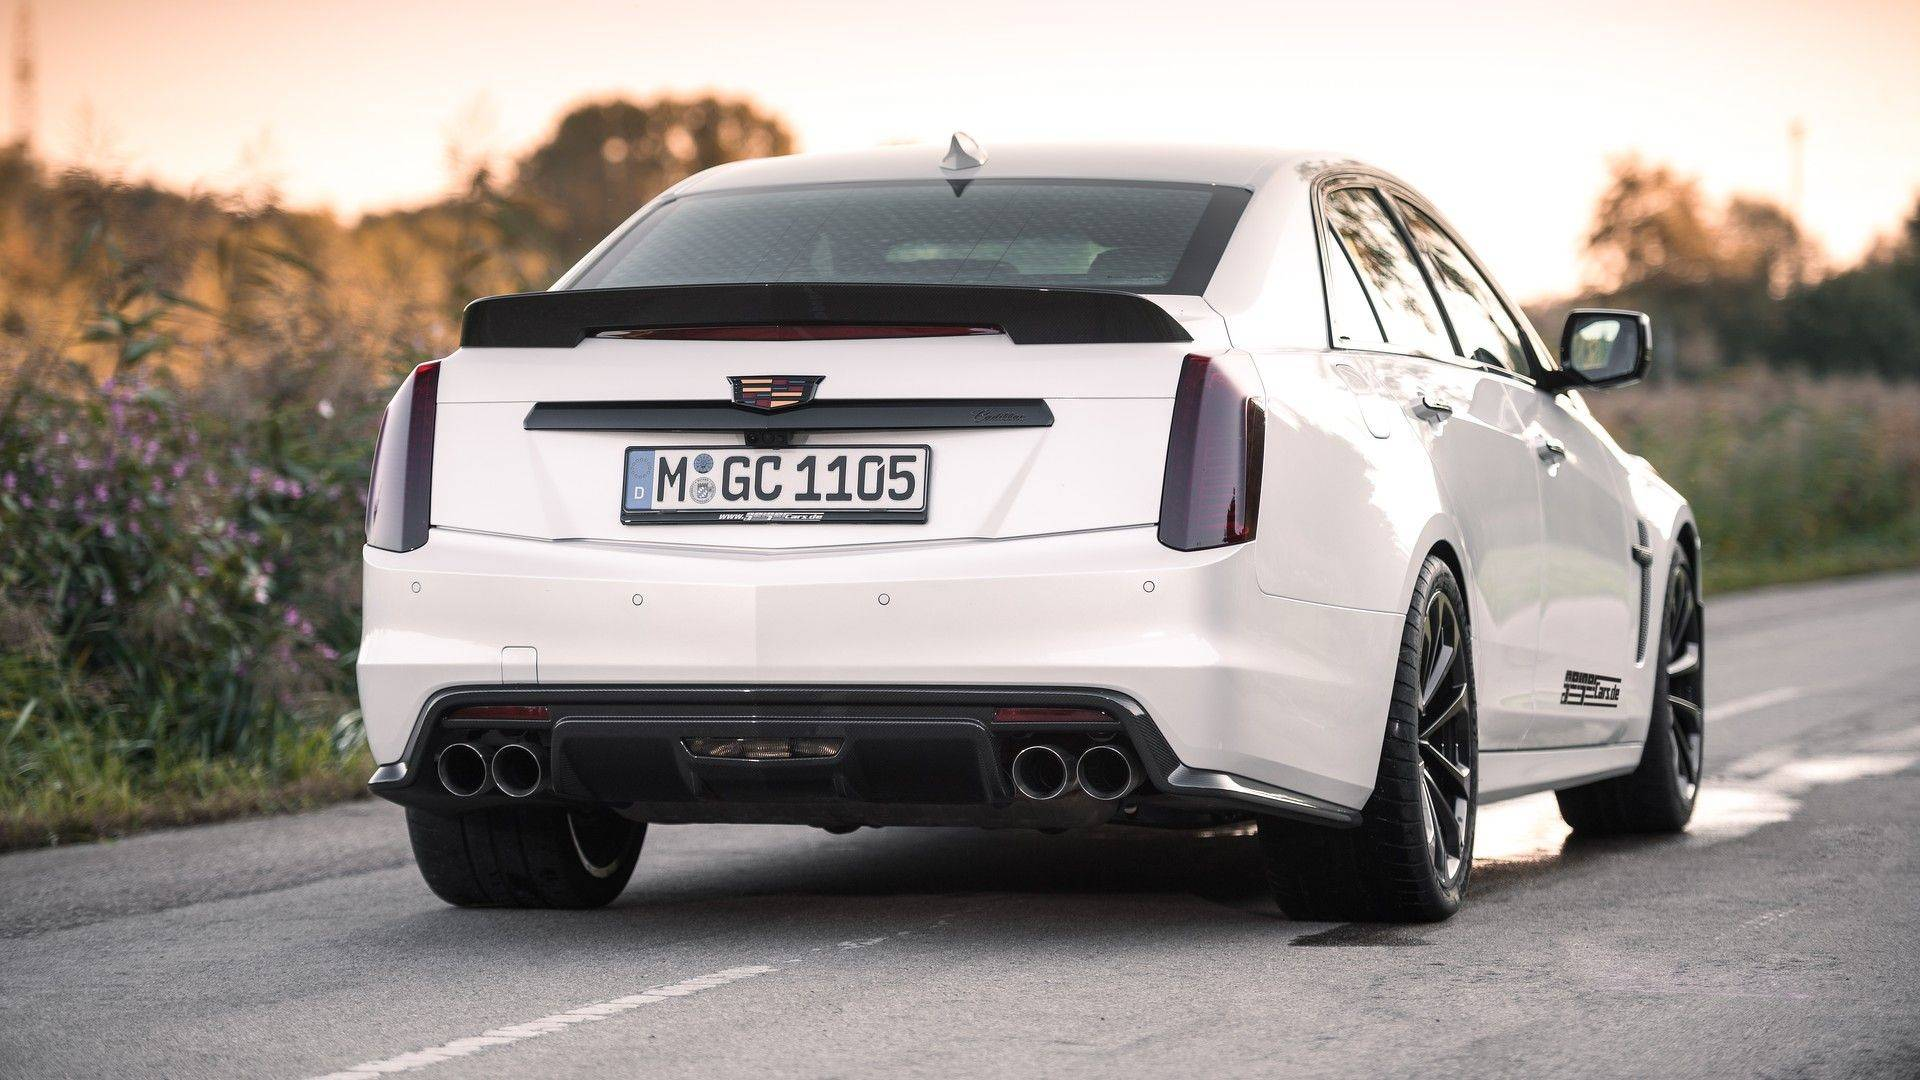 cadillac-cts-v-by-geigercars (4)